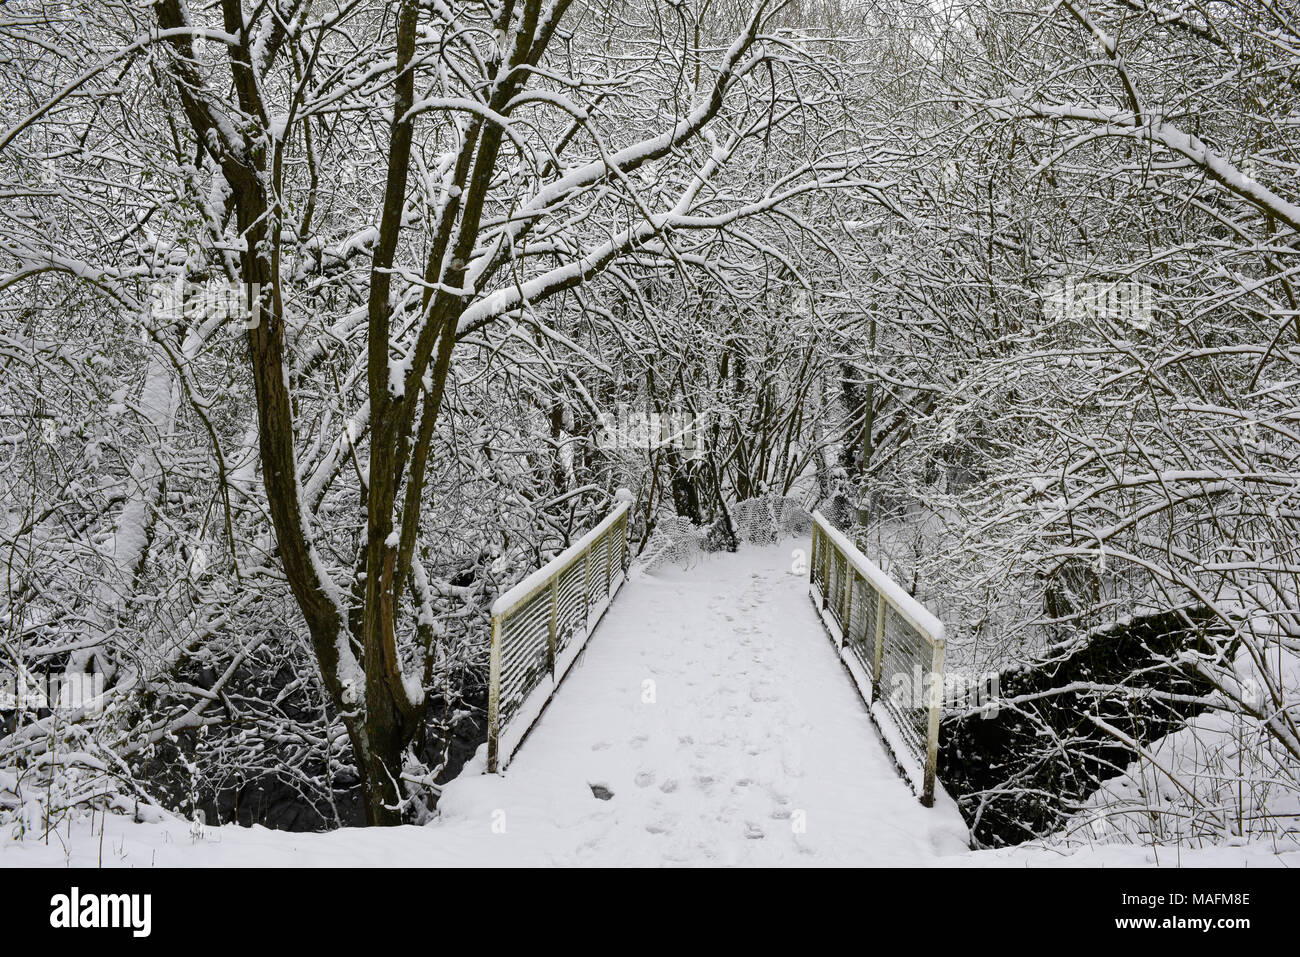 Snow covered bridge at Anton Lakes Nature Reserve in Andover, Hampshire, England - Stock Image